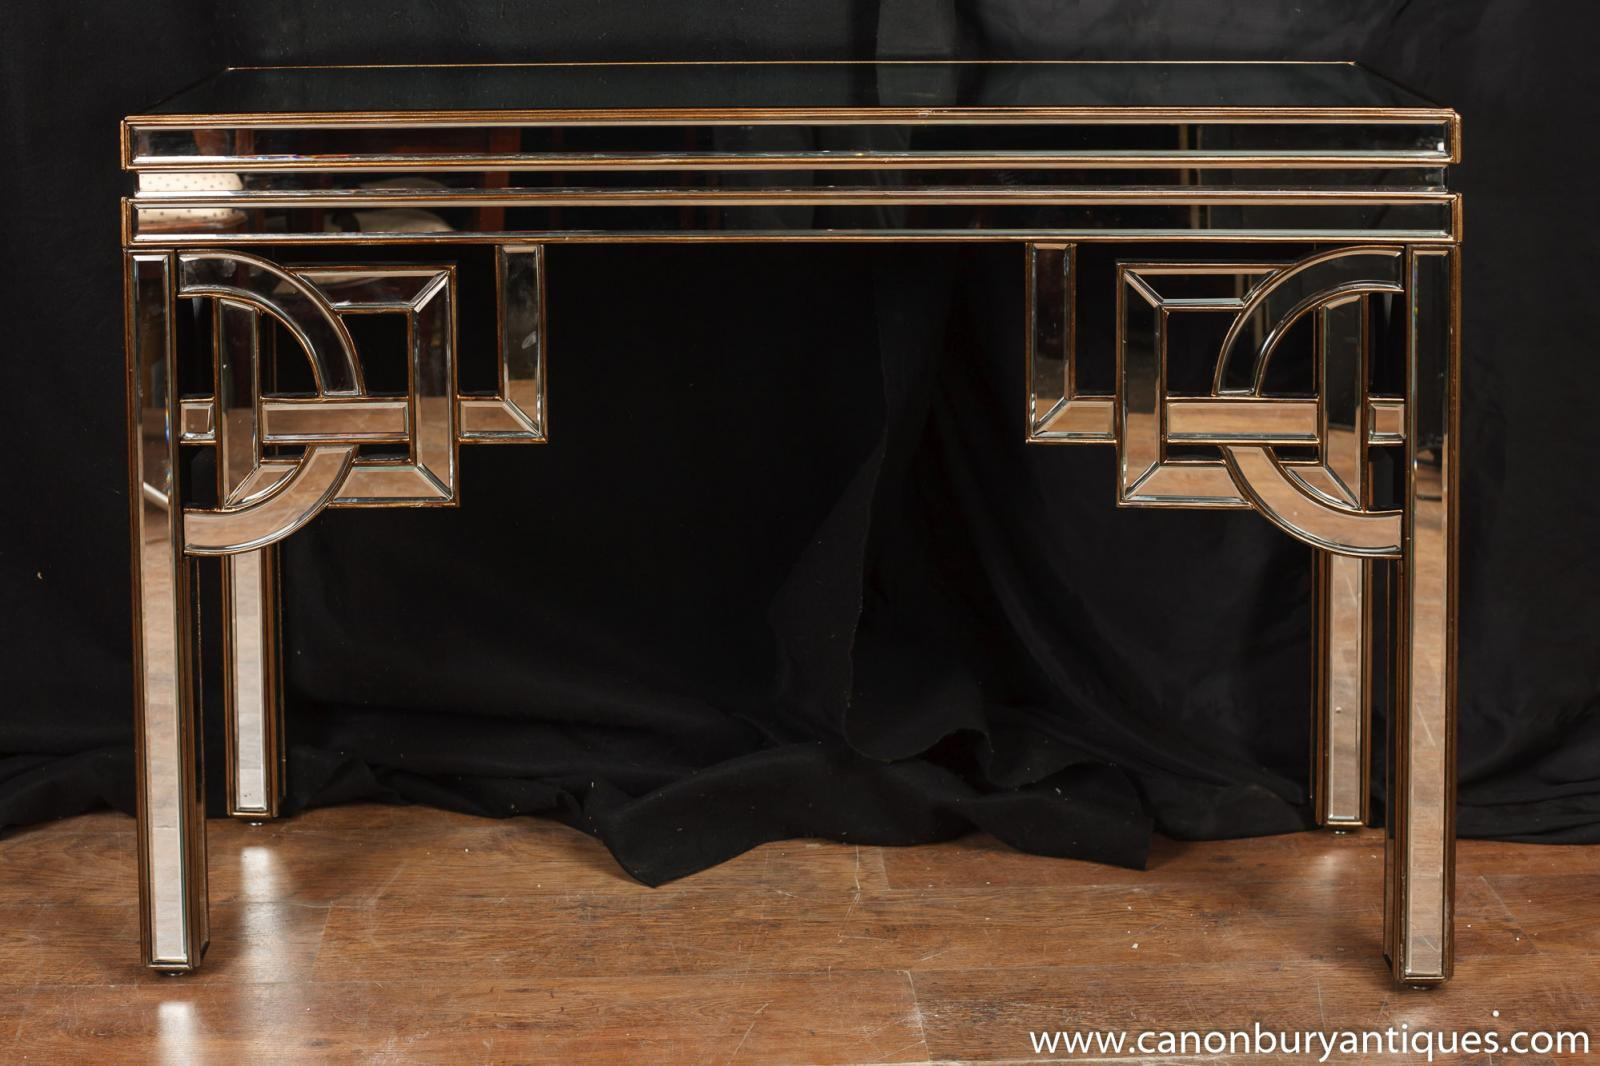 Art deco mirrored console table hall tables 1920s furniture for Deco meuble furniture richibucto